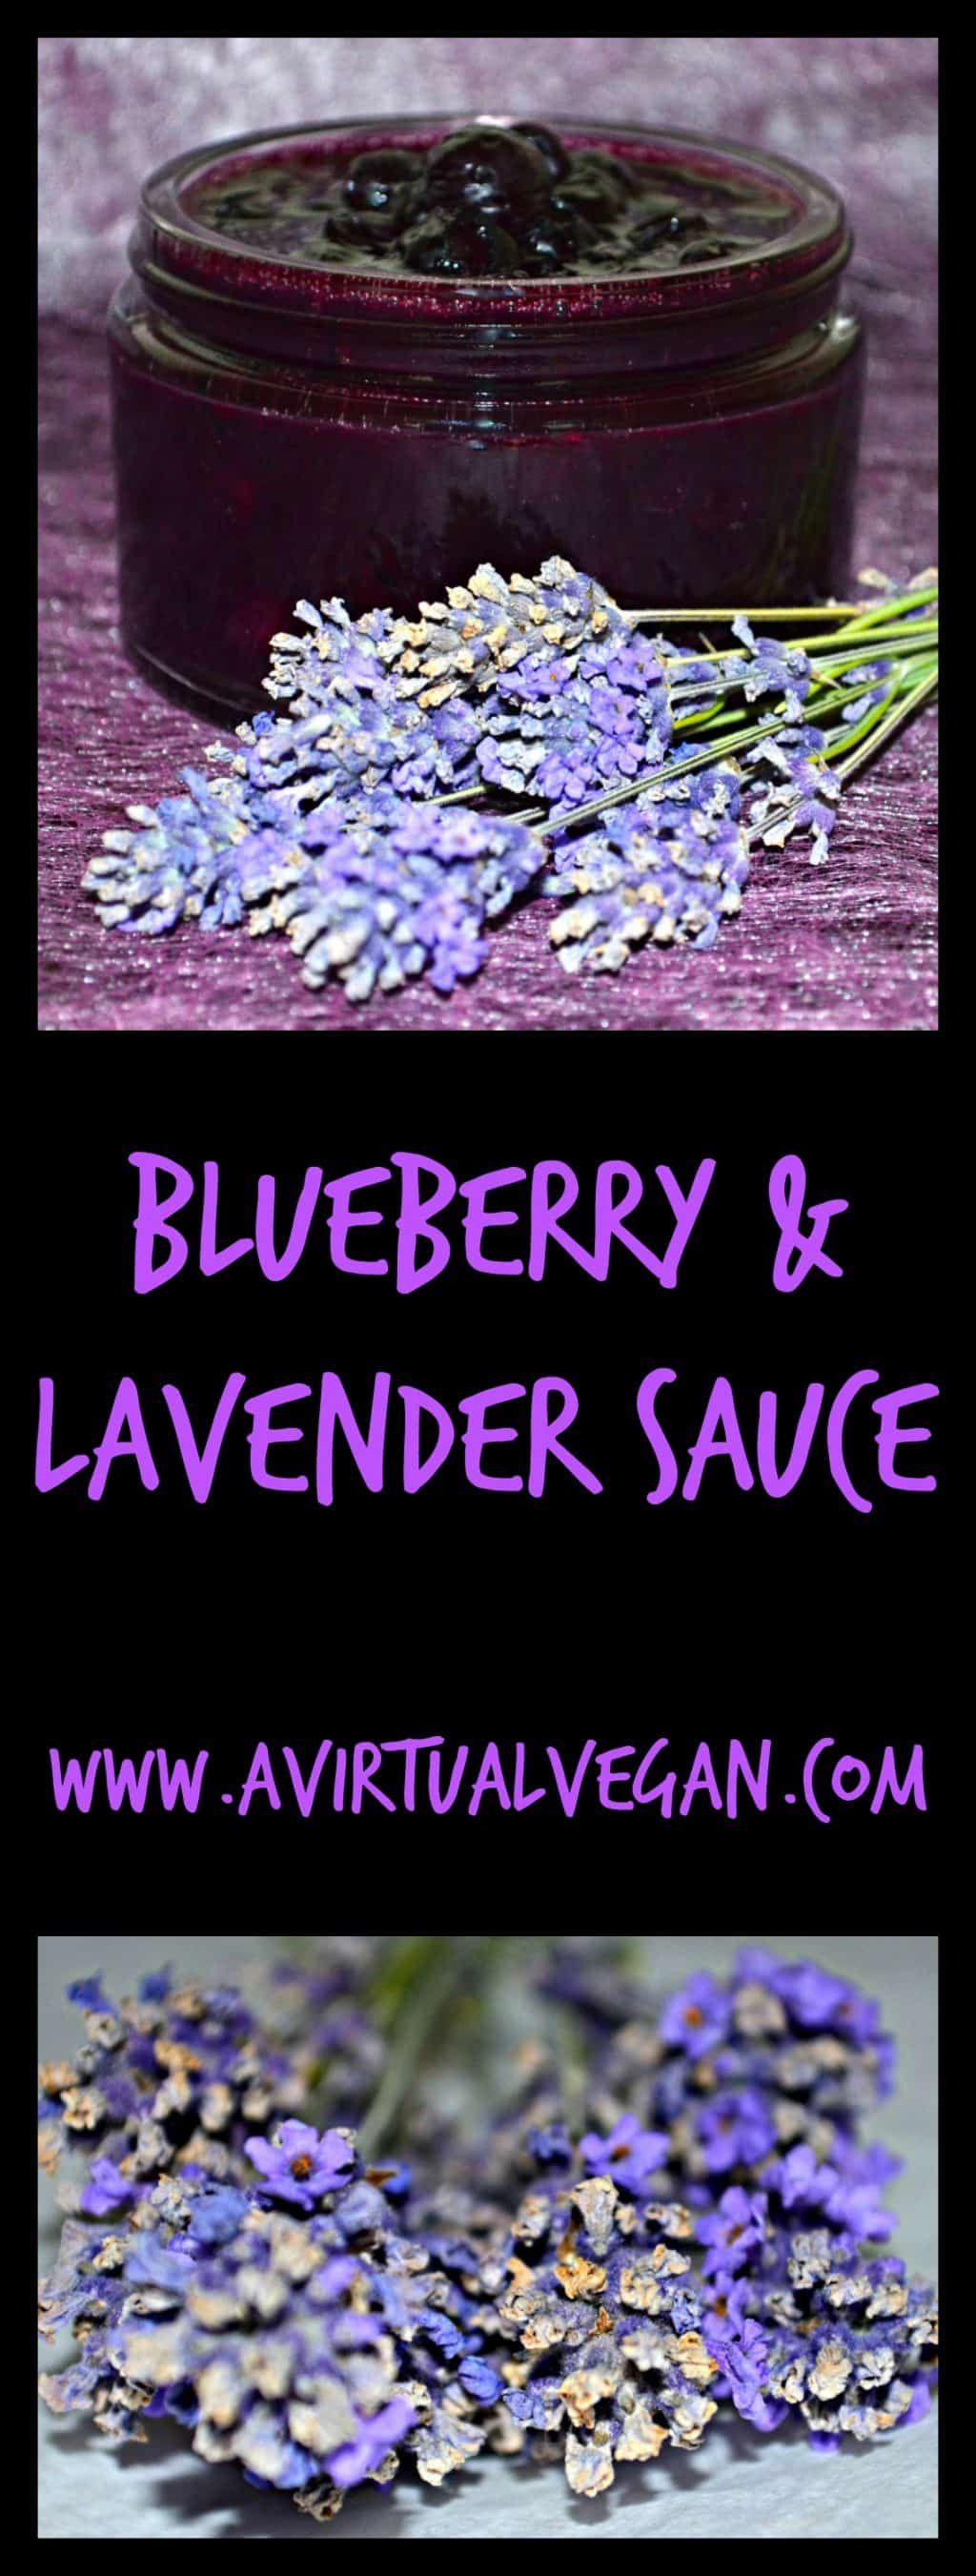 Deep purple Blueberry Lavender Sauce with a sweet, floral aroma & unmistakable herbal undertones of lavender. Great with so many things! #blueberry #lavender #sauce